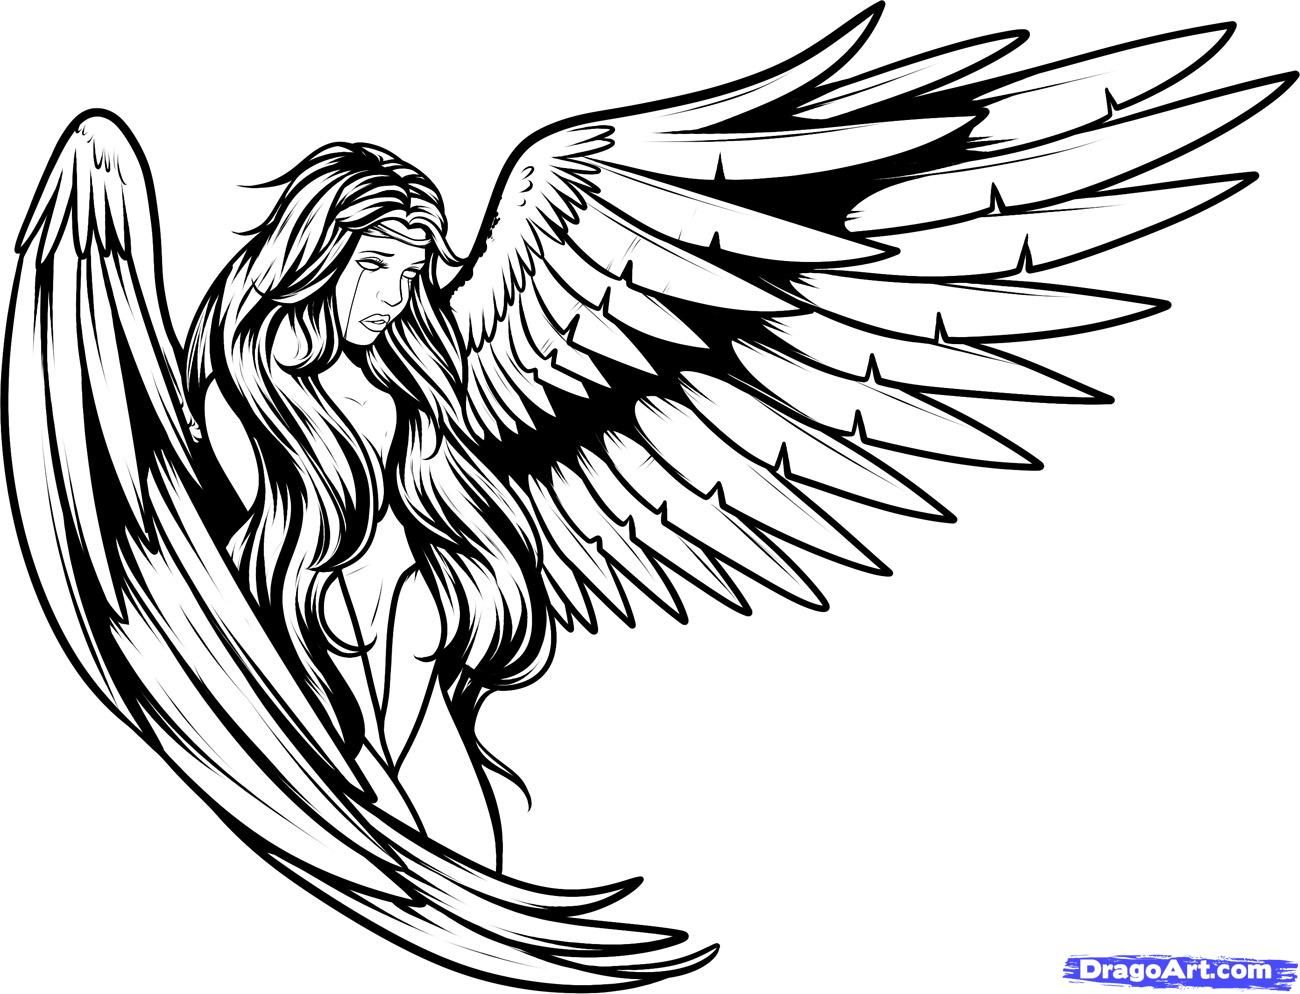 torn angel wings large wings angel tattoo must ink pinterest angel angel tattoo designs. Black Bedroom Furniture Sets. Home Design Ideas